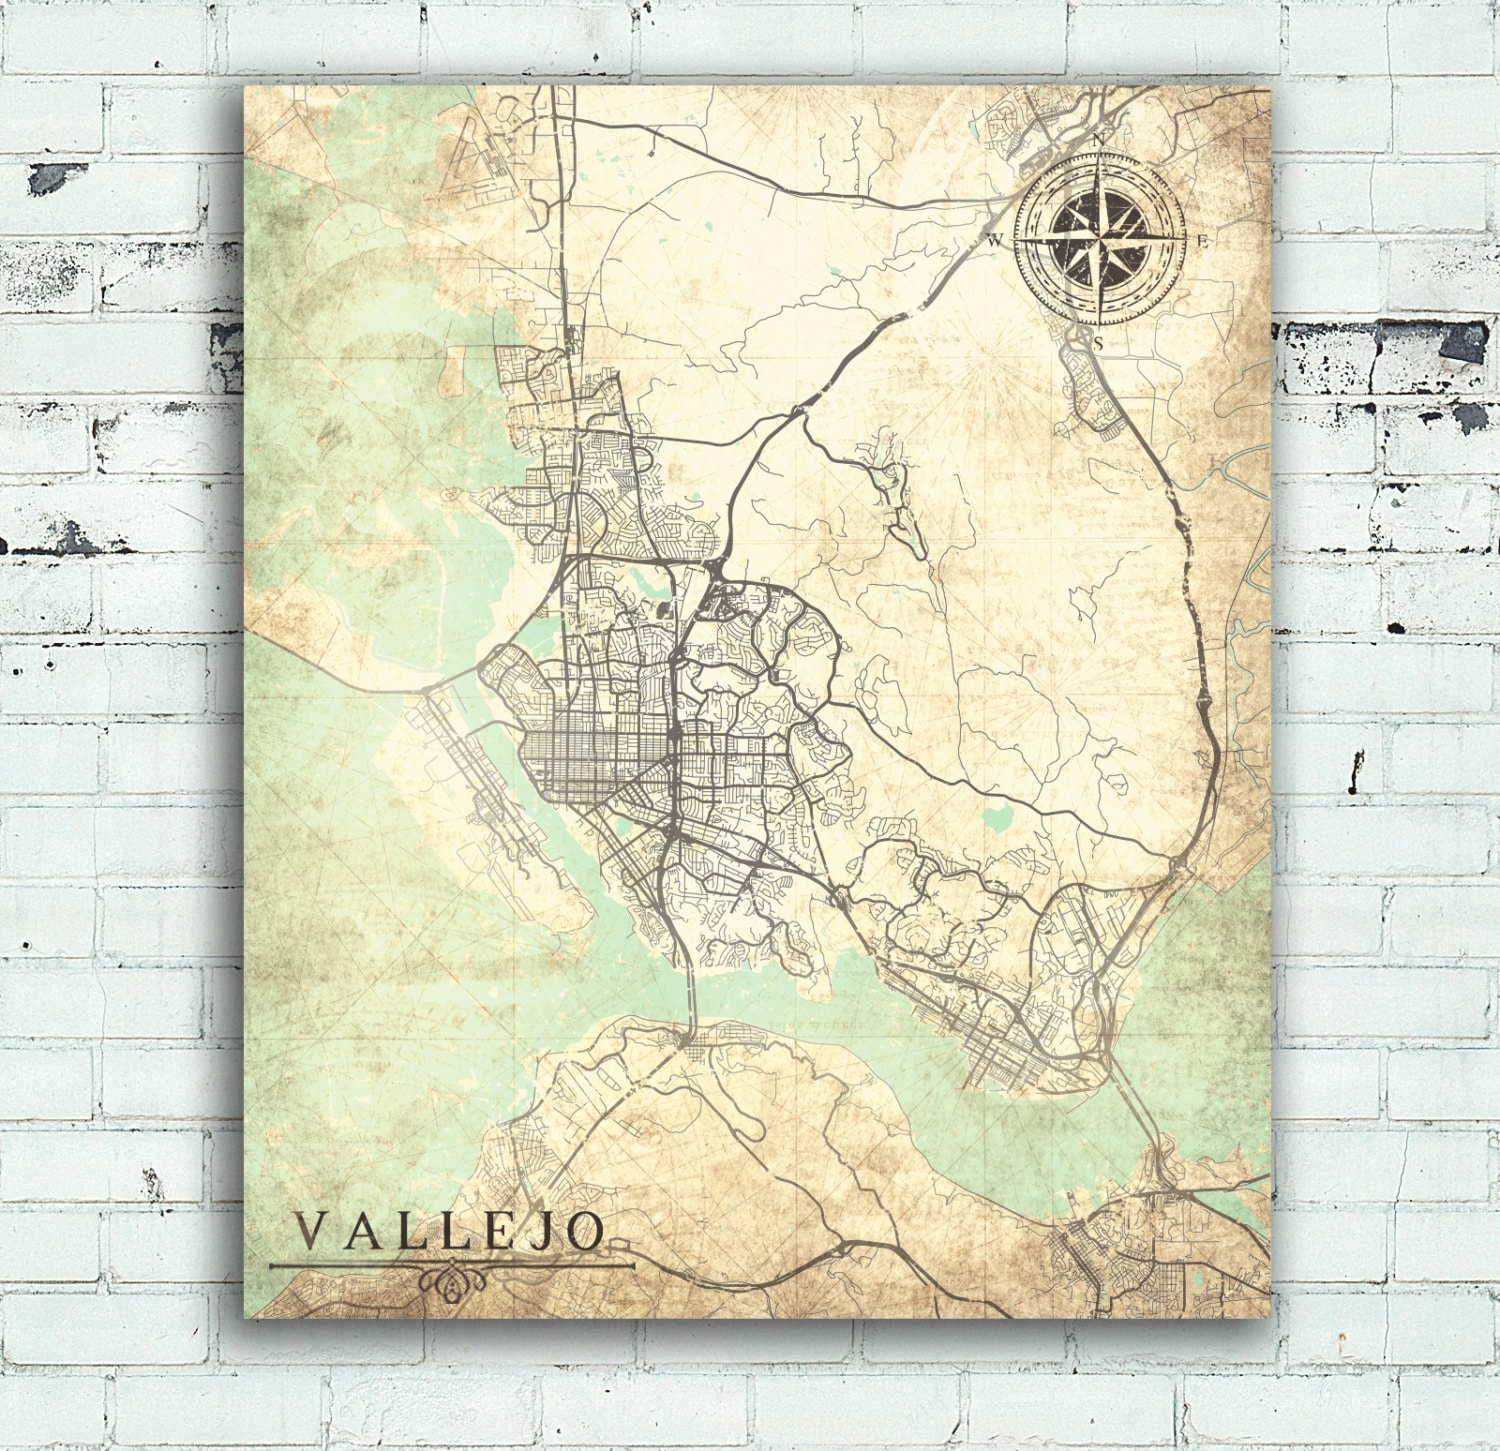 VALLEJO CA Canvas Print CA California Vintage map Vallejo Ca